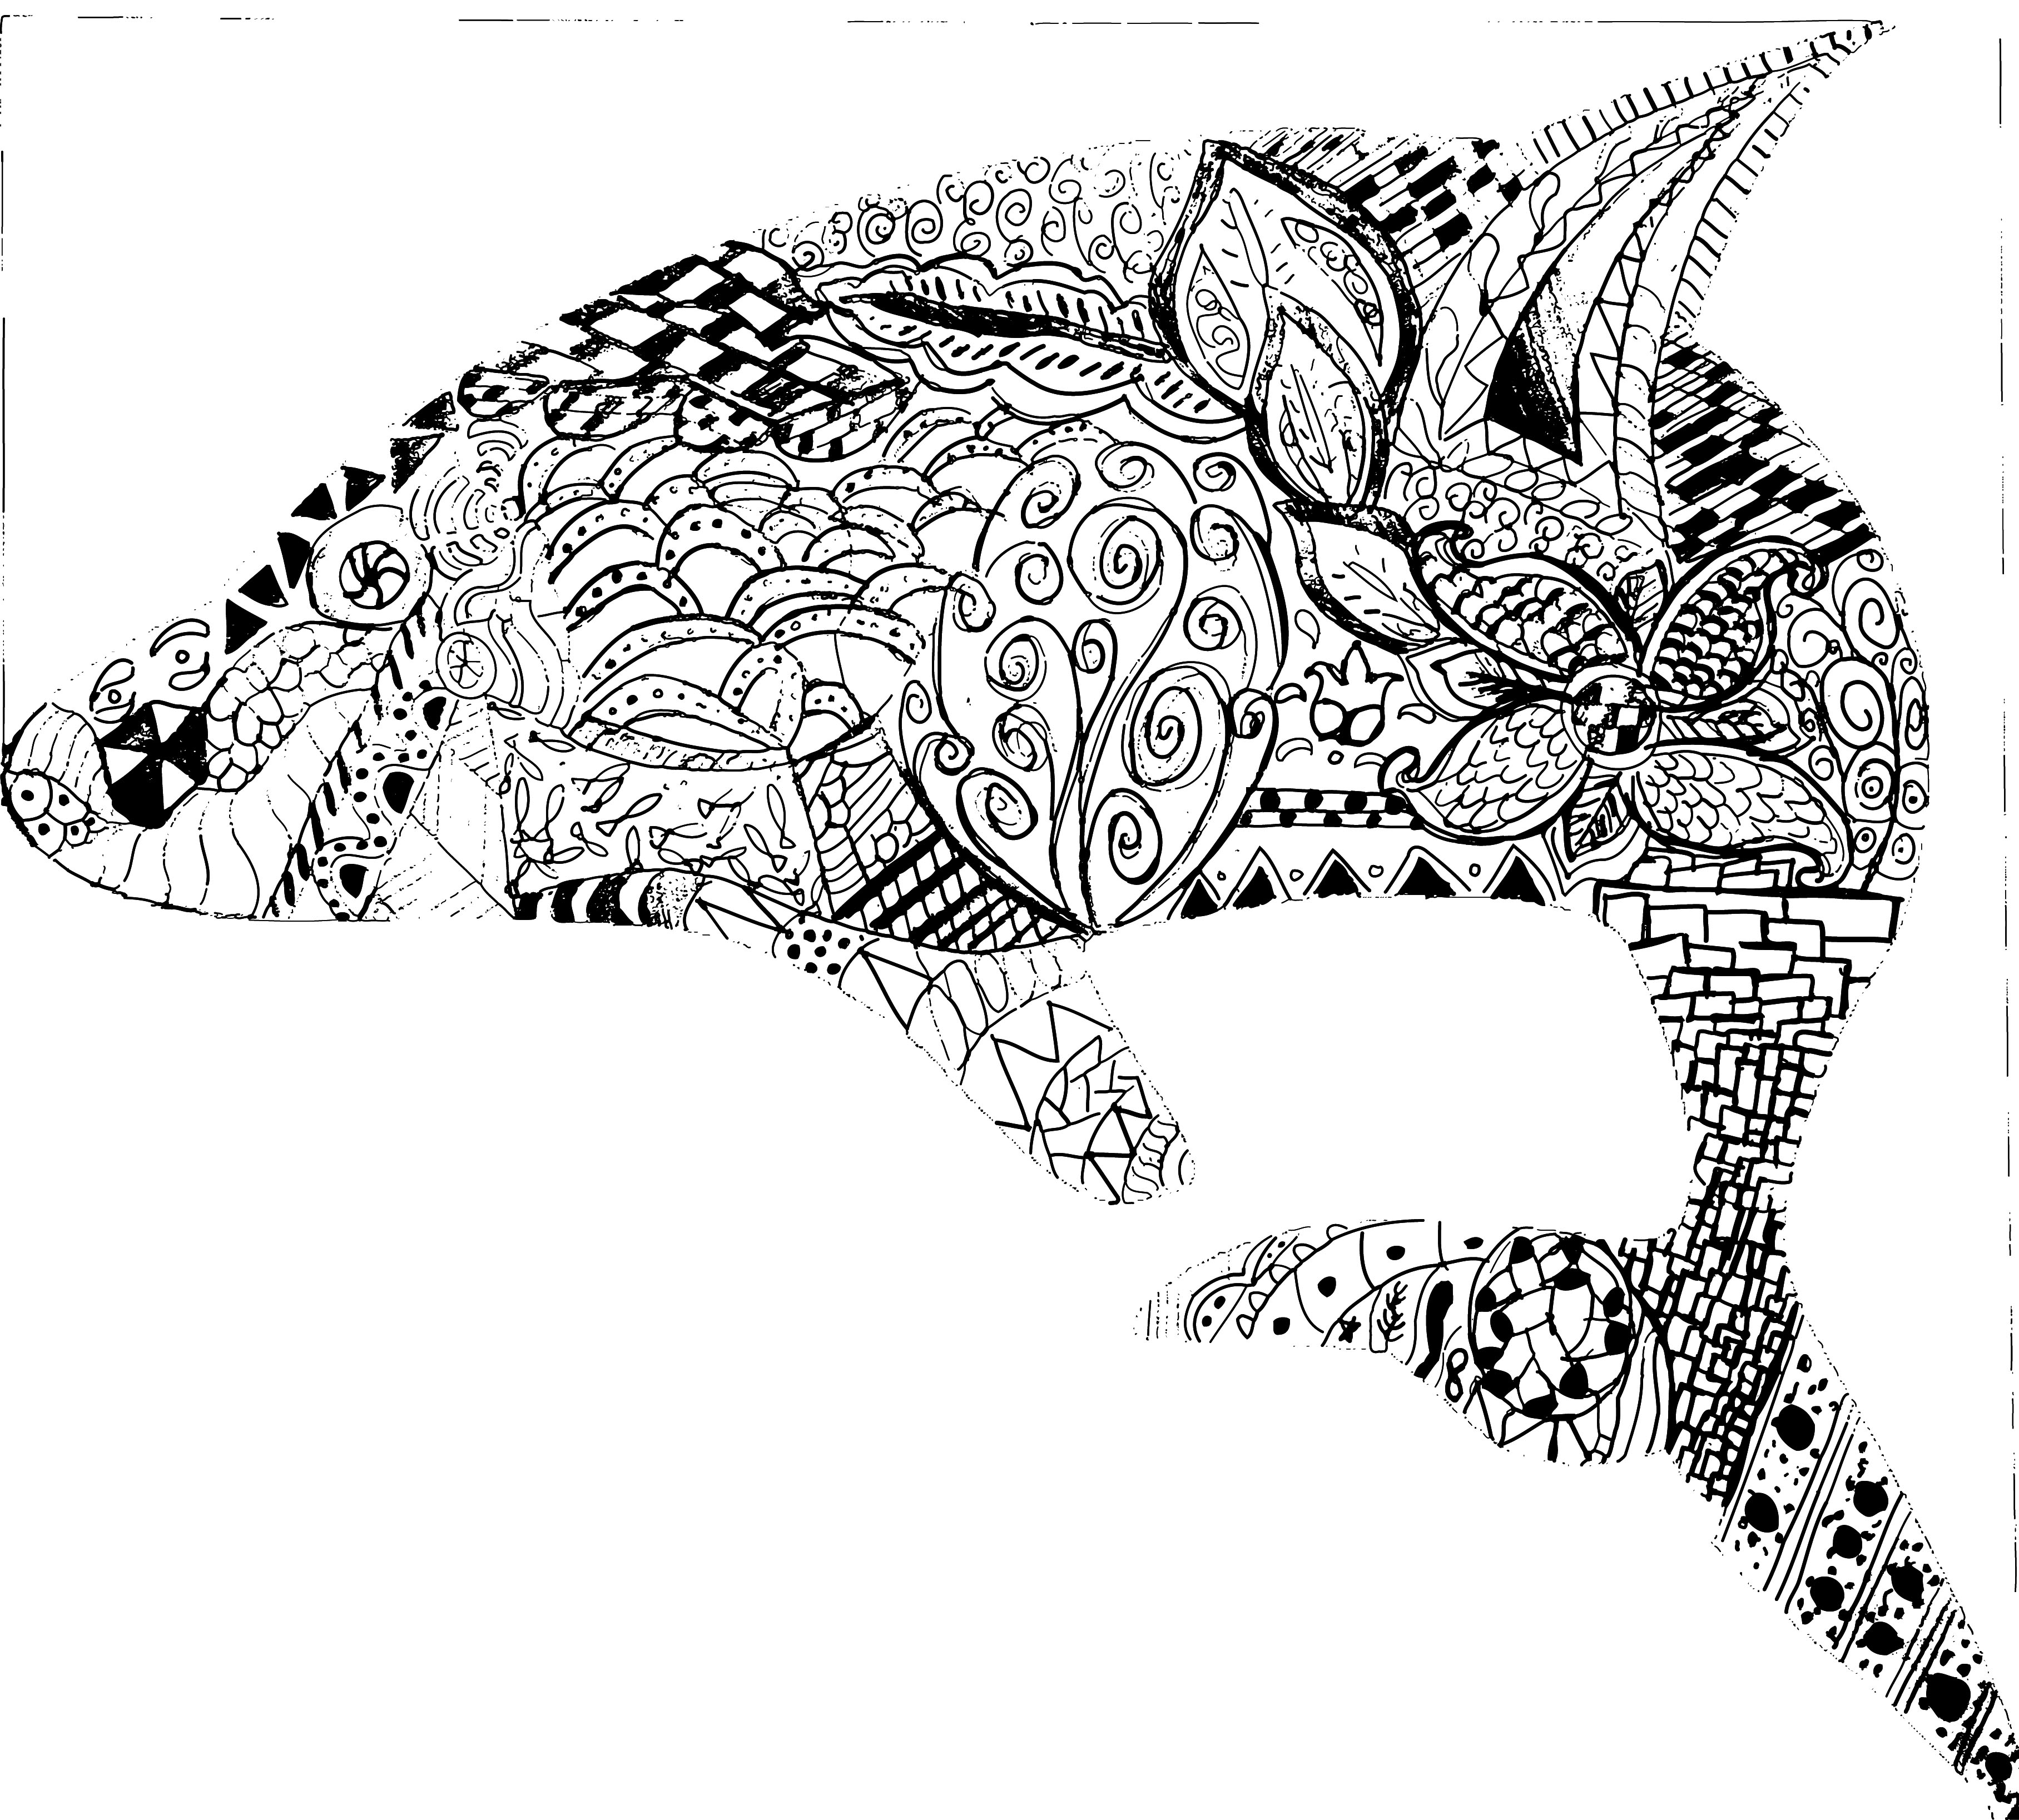 Free coloring pages march - Pattern Coloring Pages To Enhance Children S Creativity Filed Under Uncategorized Leave A Comment